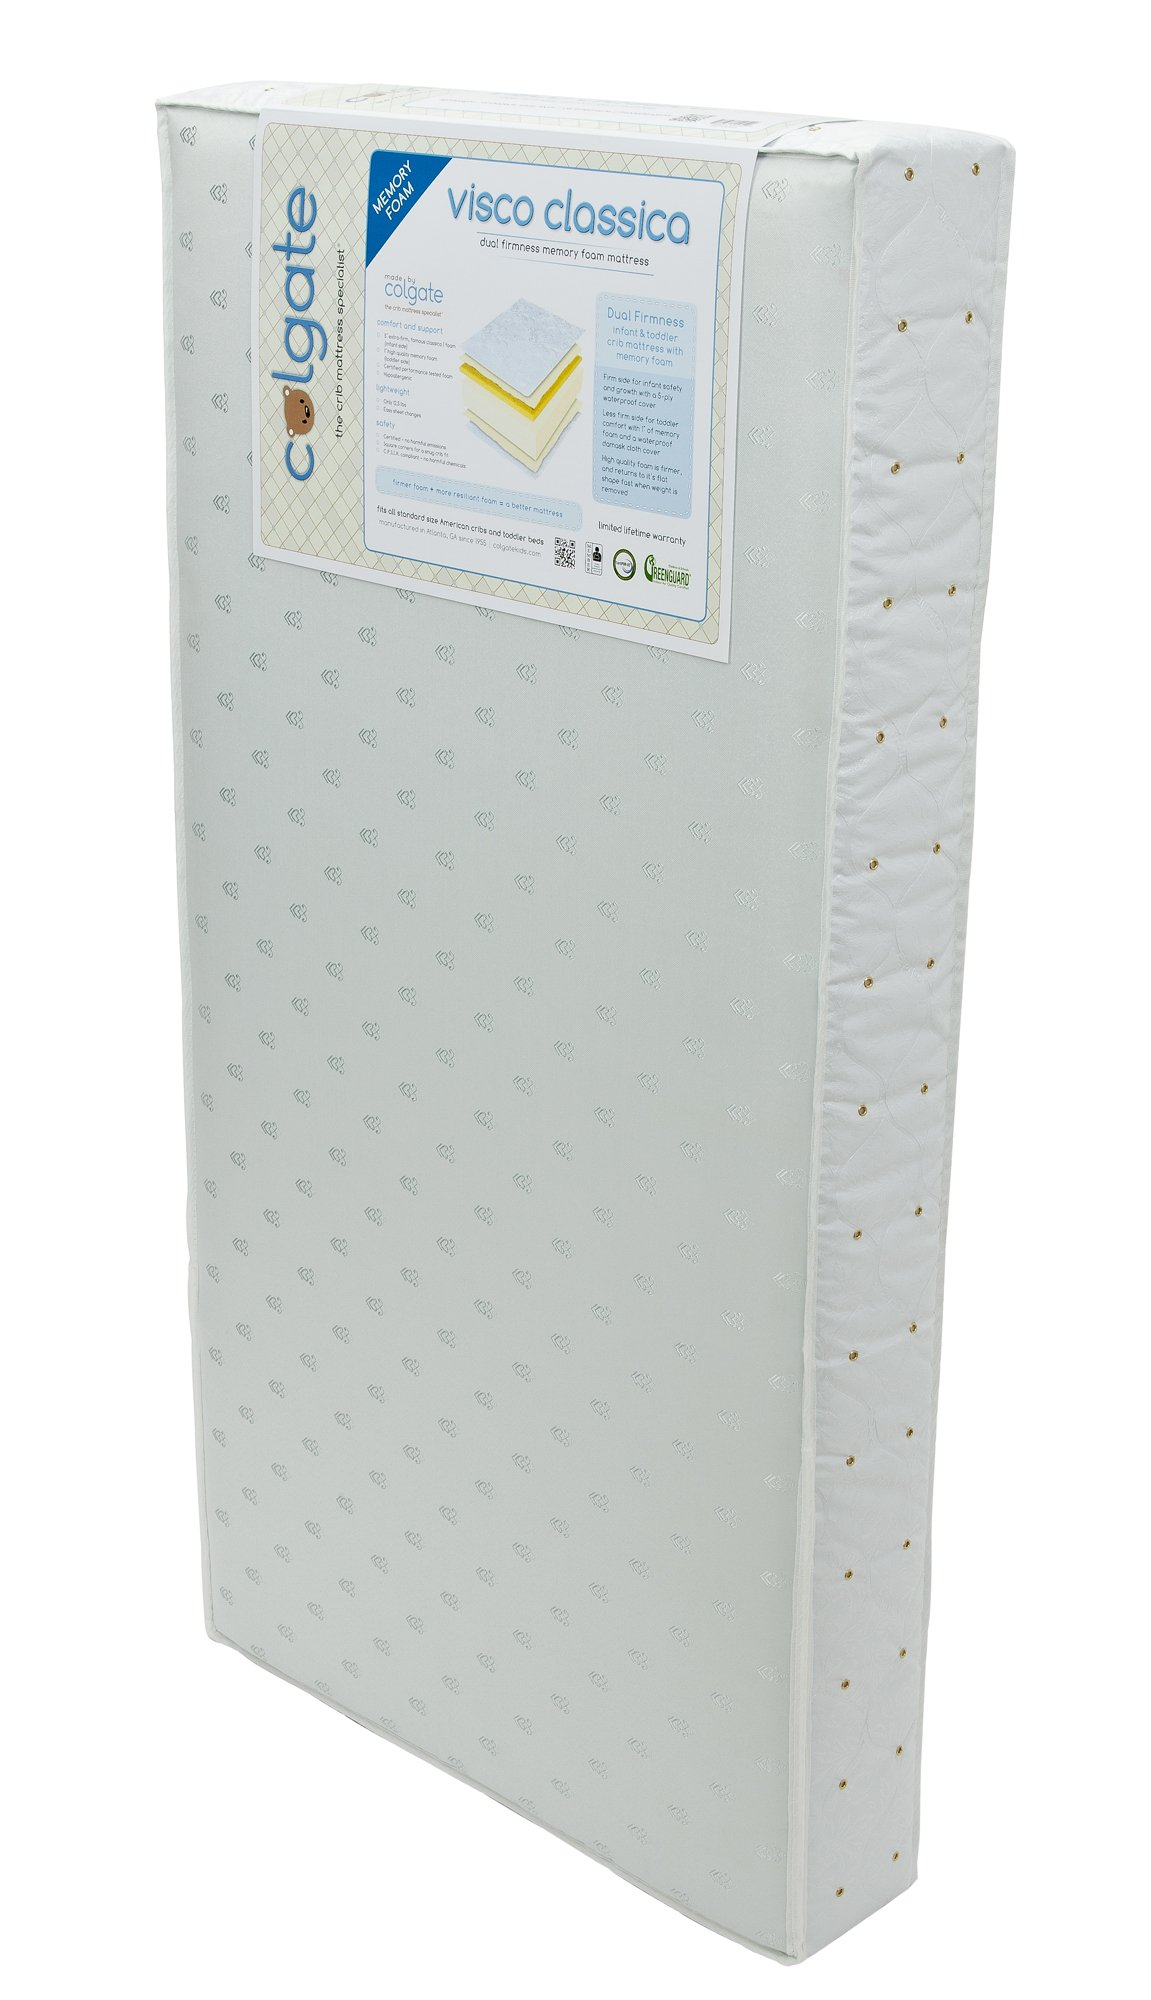 Colgate Visco Classica - Foam Crib Mattress and Memory Foam Toddler Side with Waterproof Cover